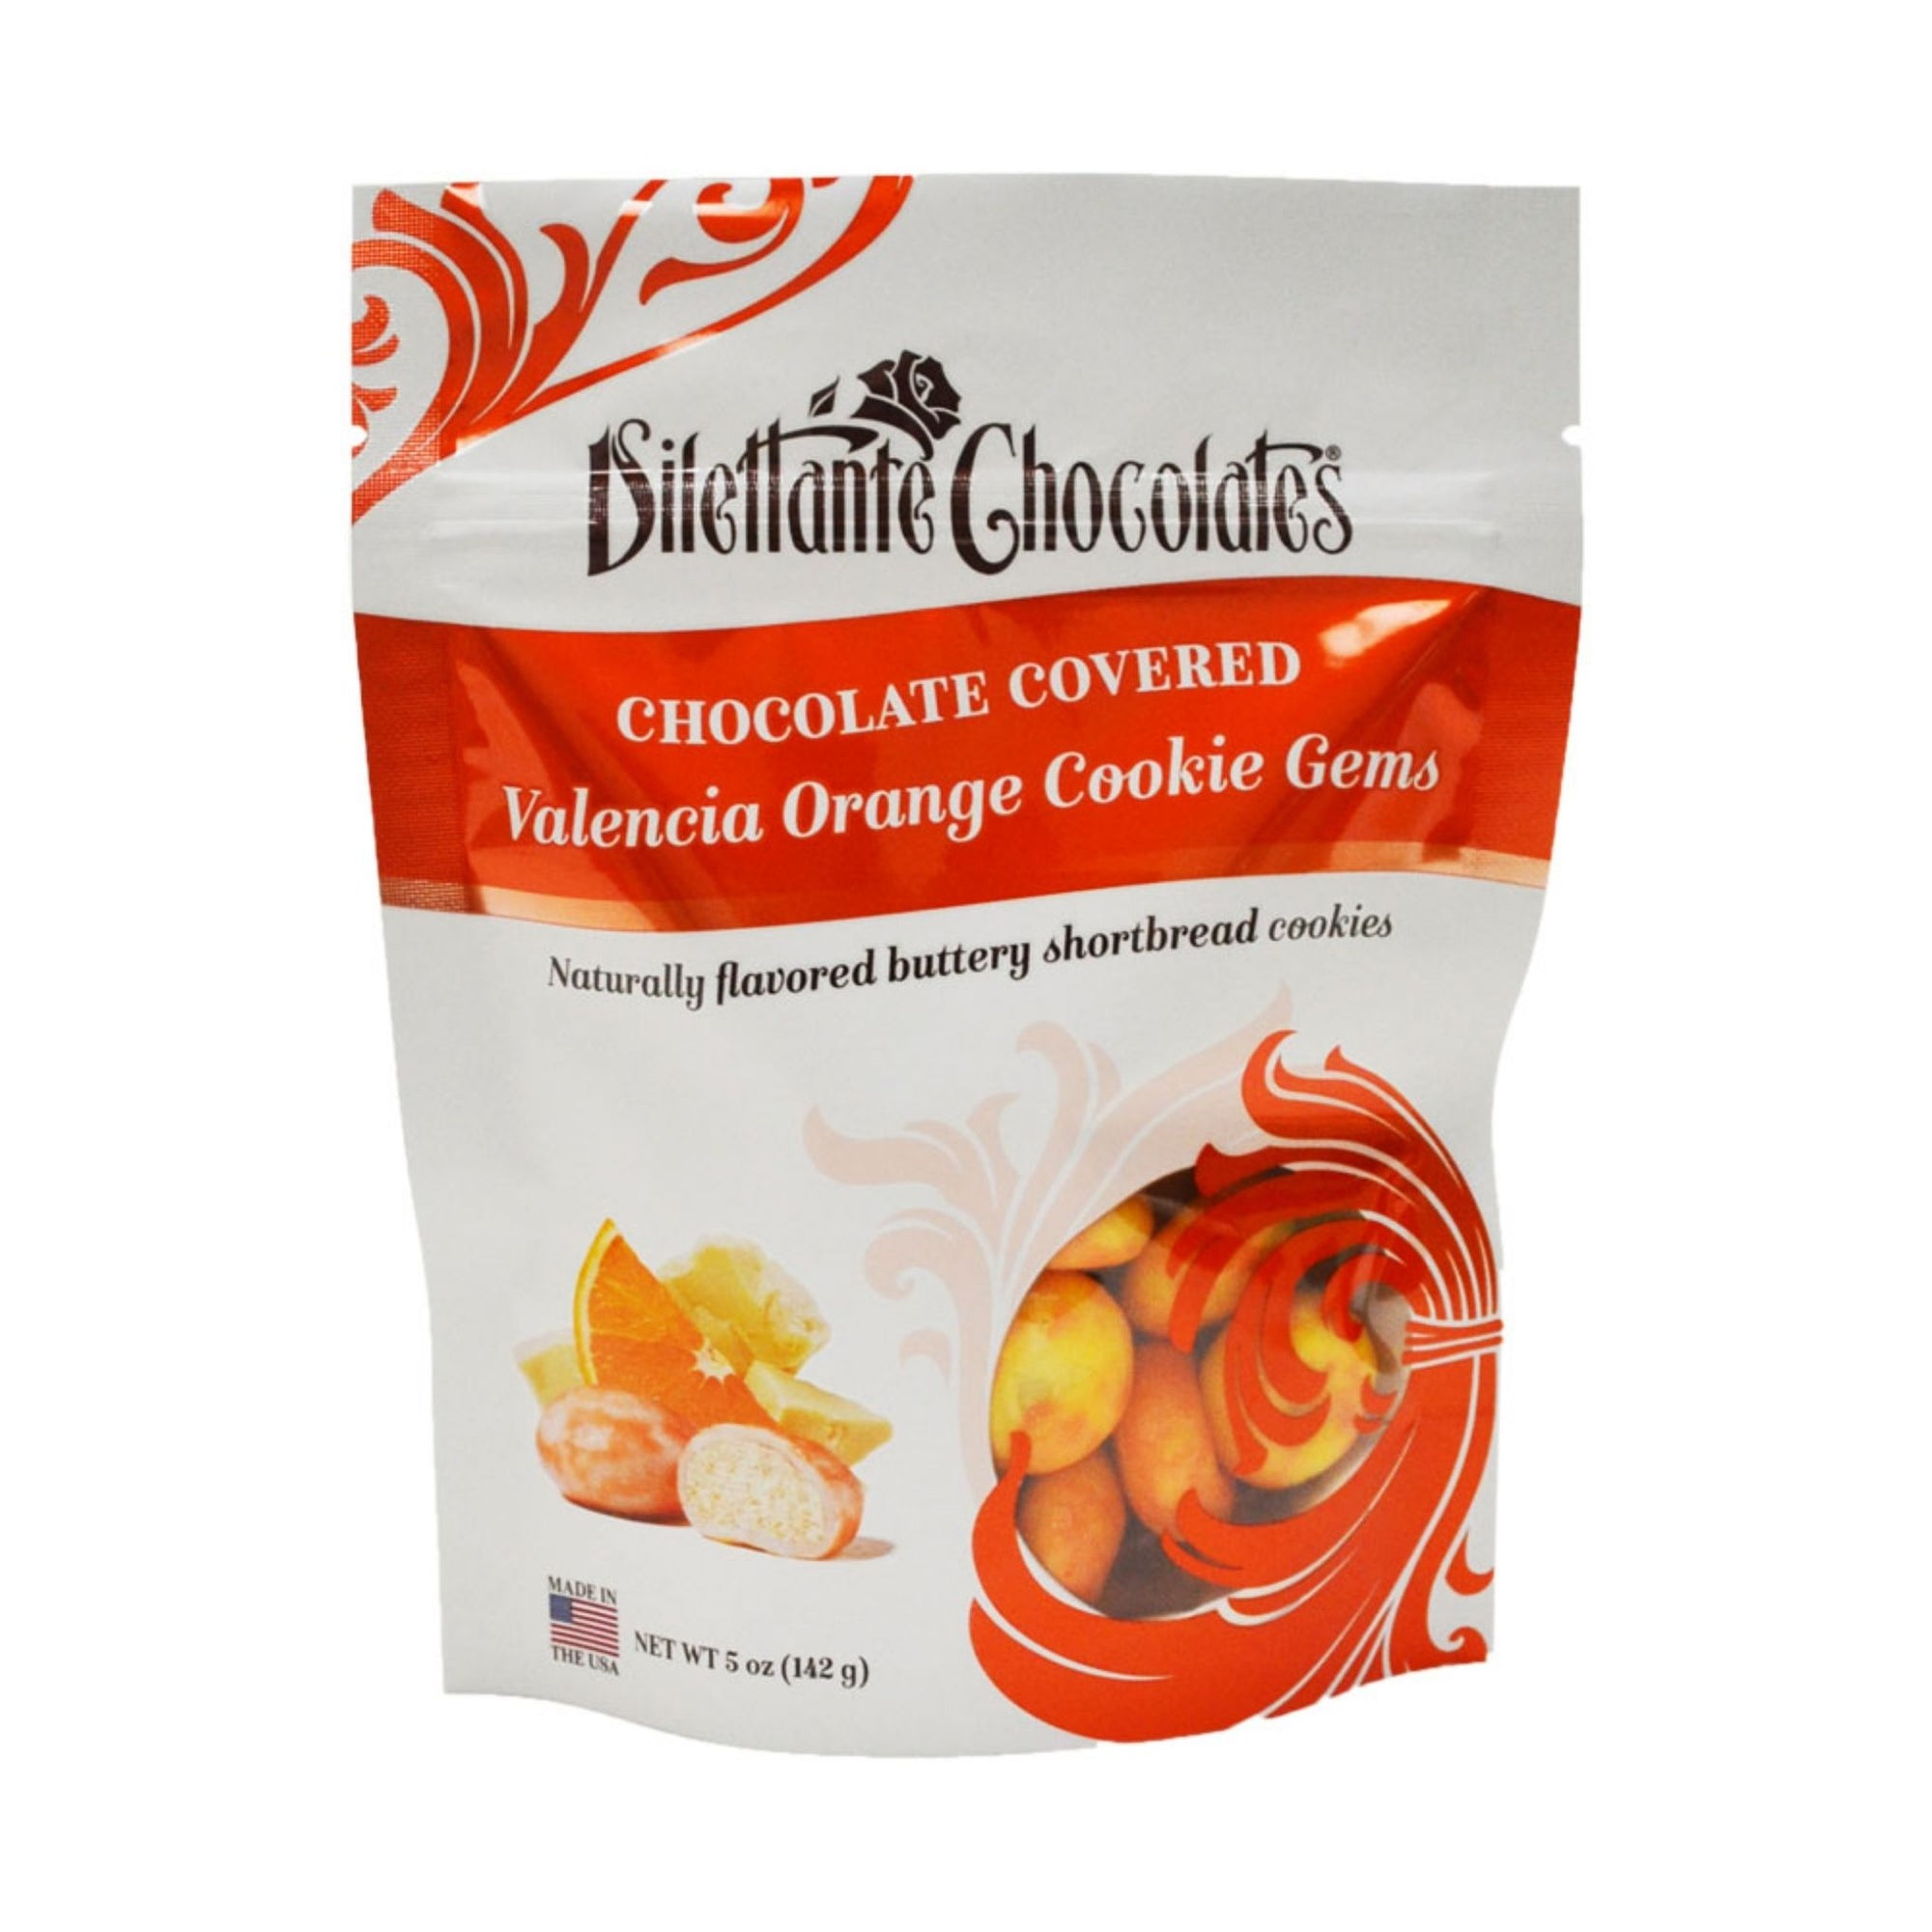 Dilettante Chocolates Chocolate-Covered Valencia Orange Cookie Gems Naturally Flavored Buttery Shortbread Cookies In a 5-Ounce Orange Bag